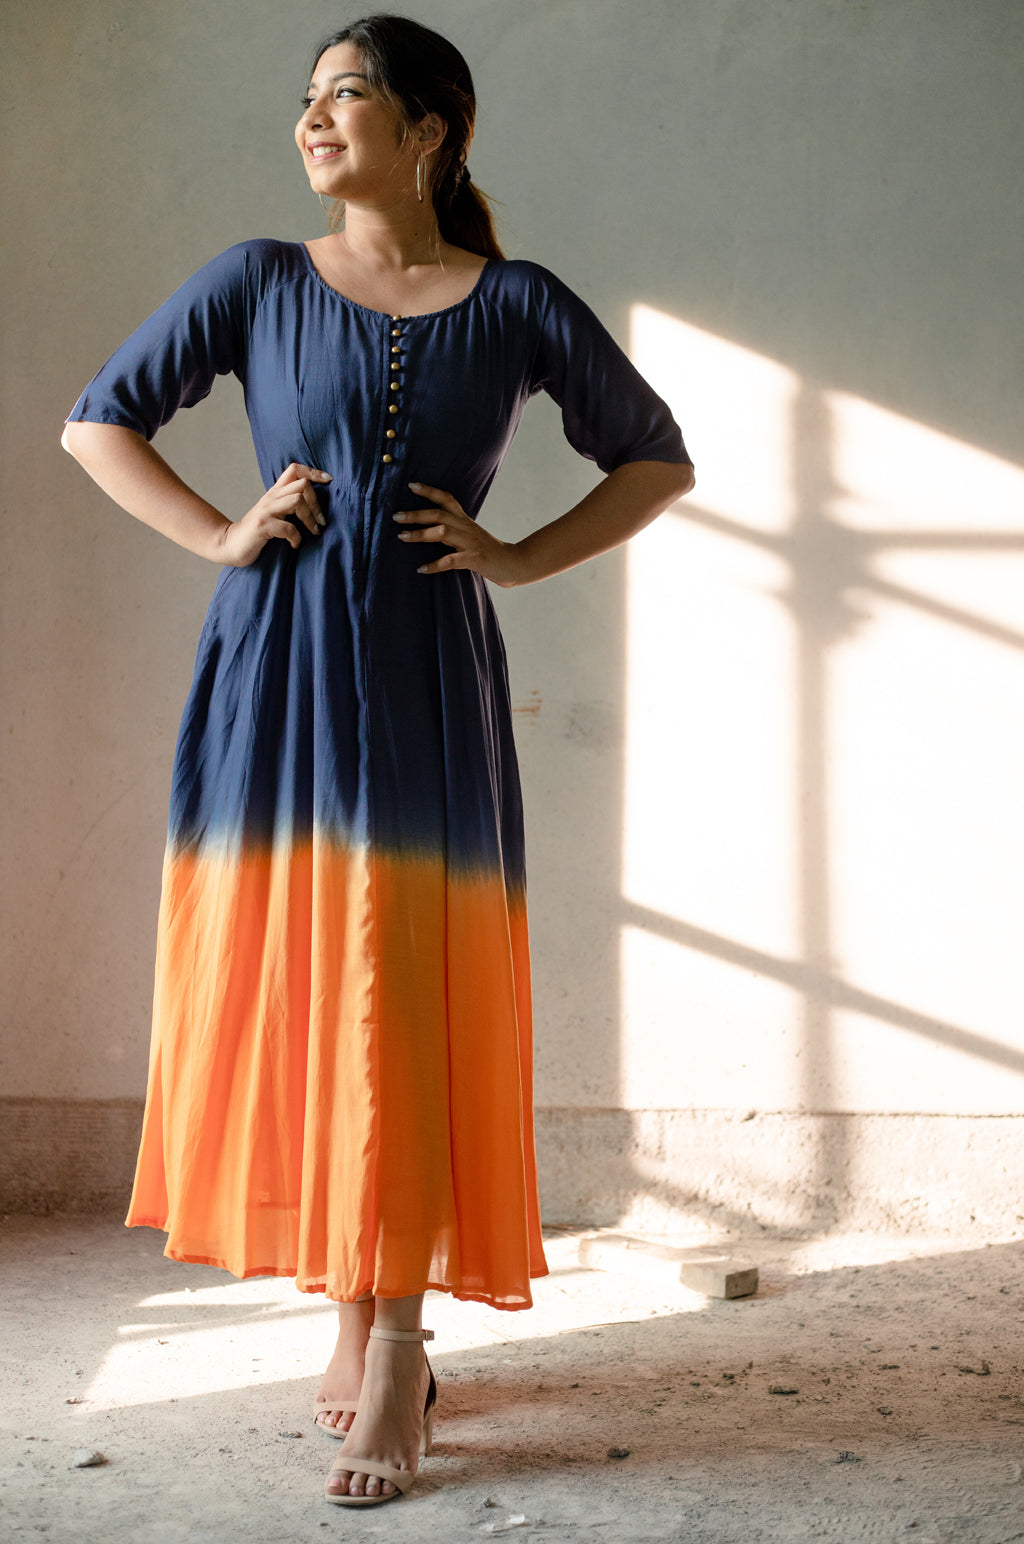 Indigo and Orange Fit and Flare Dress